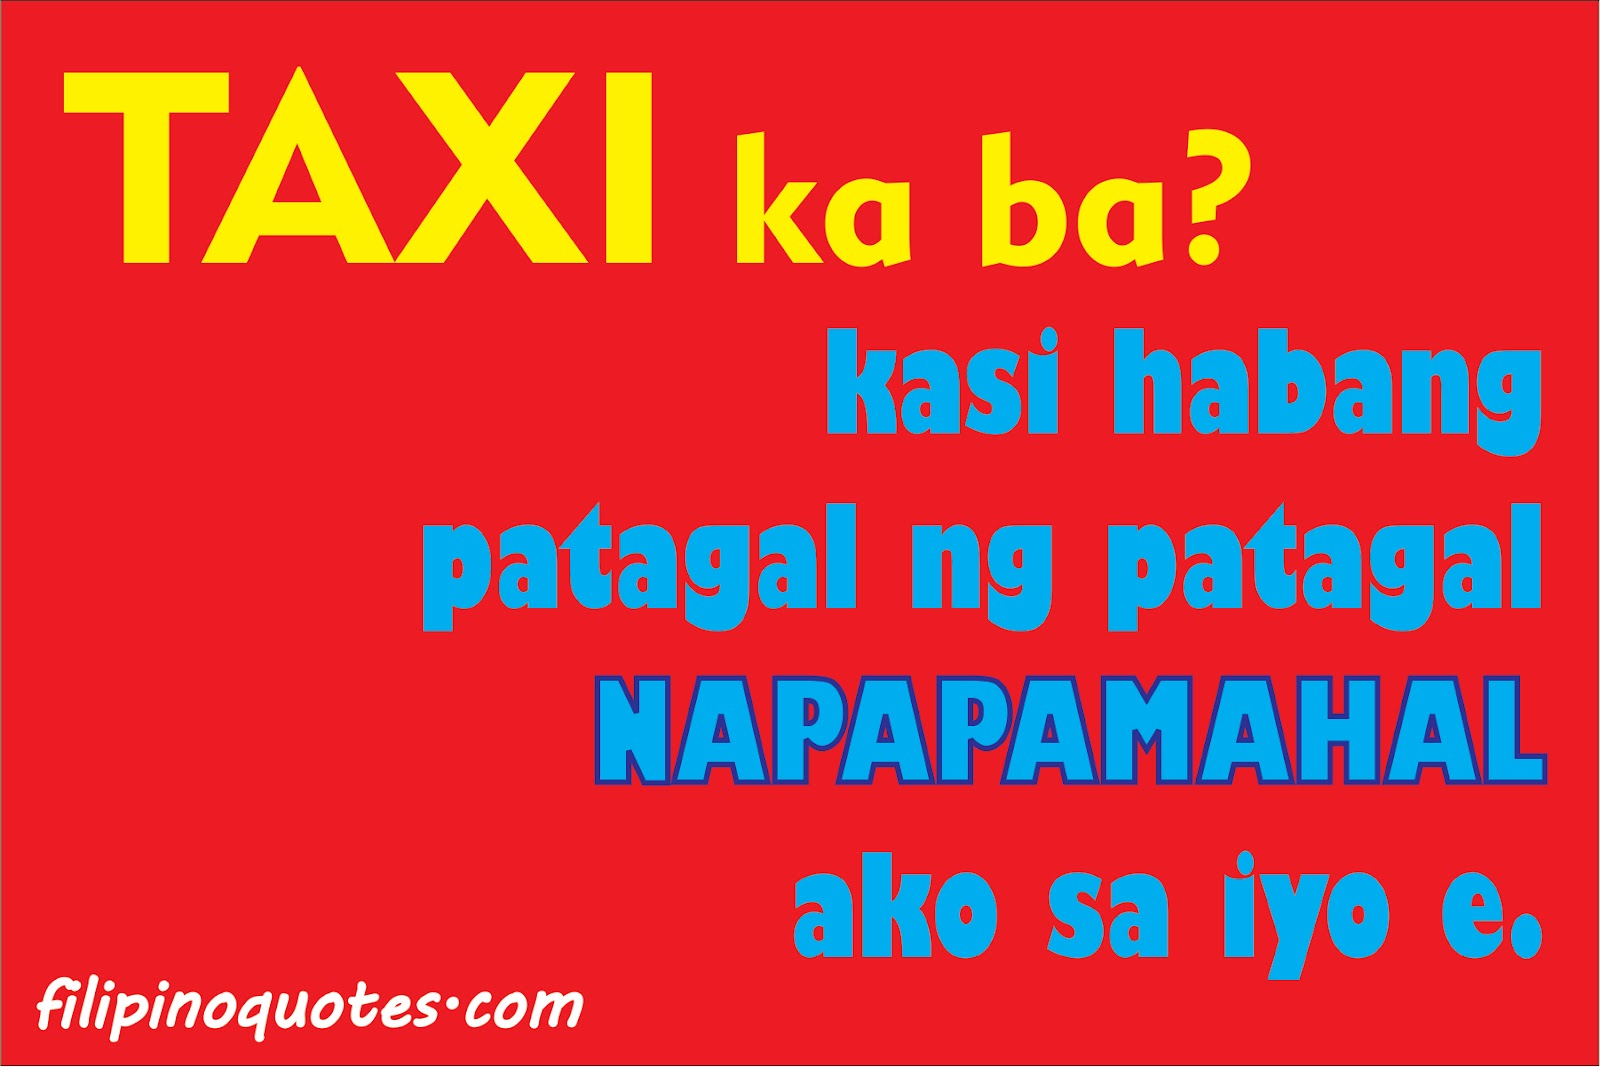 Love Quotes For Him Tagalog Pick Up Lines : Cheesy Pinoy PickUp Lines (May 2012) - Tagalog Love Quotes